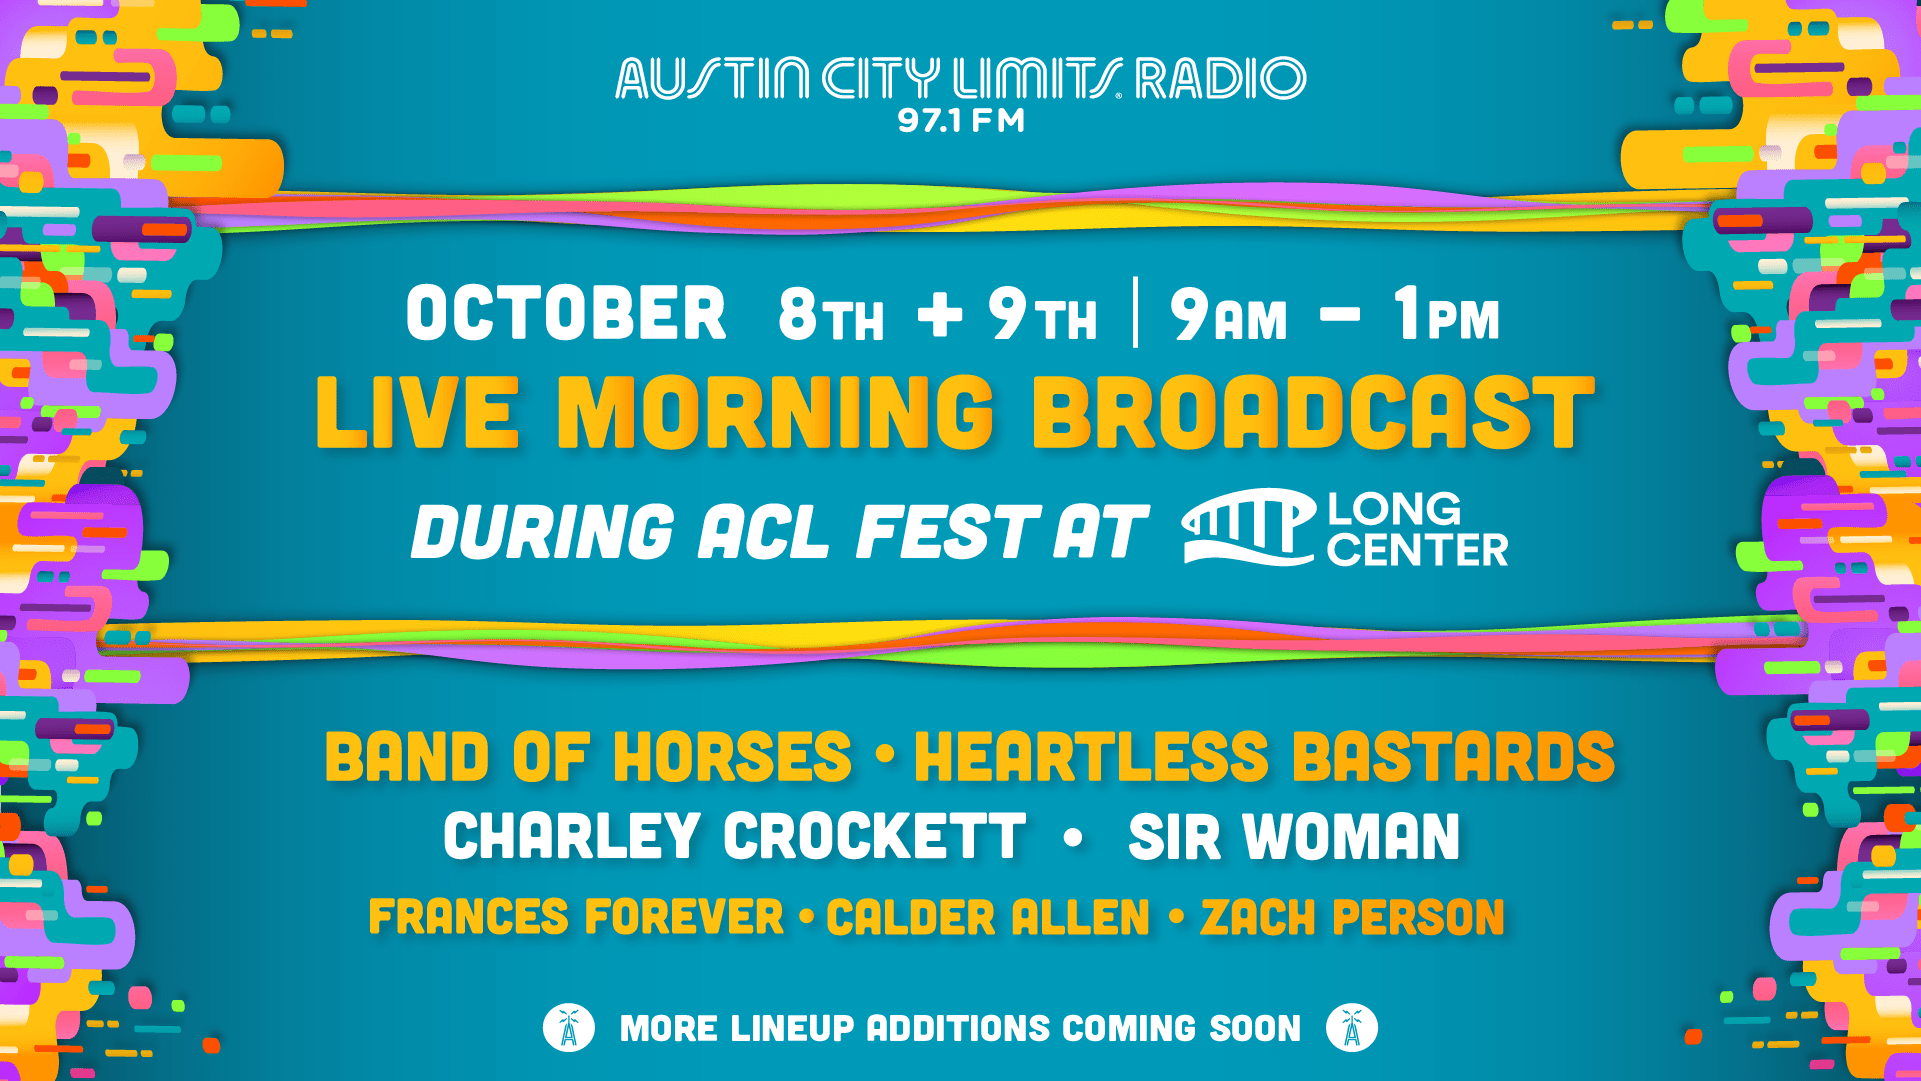 Live Morning Broadcast during ACL Fest 2021